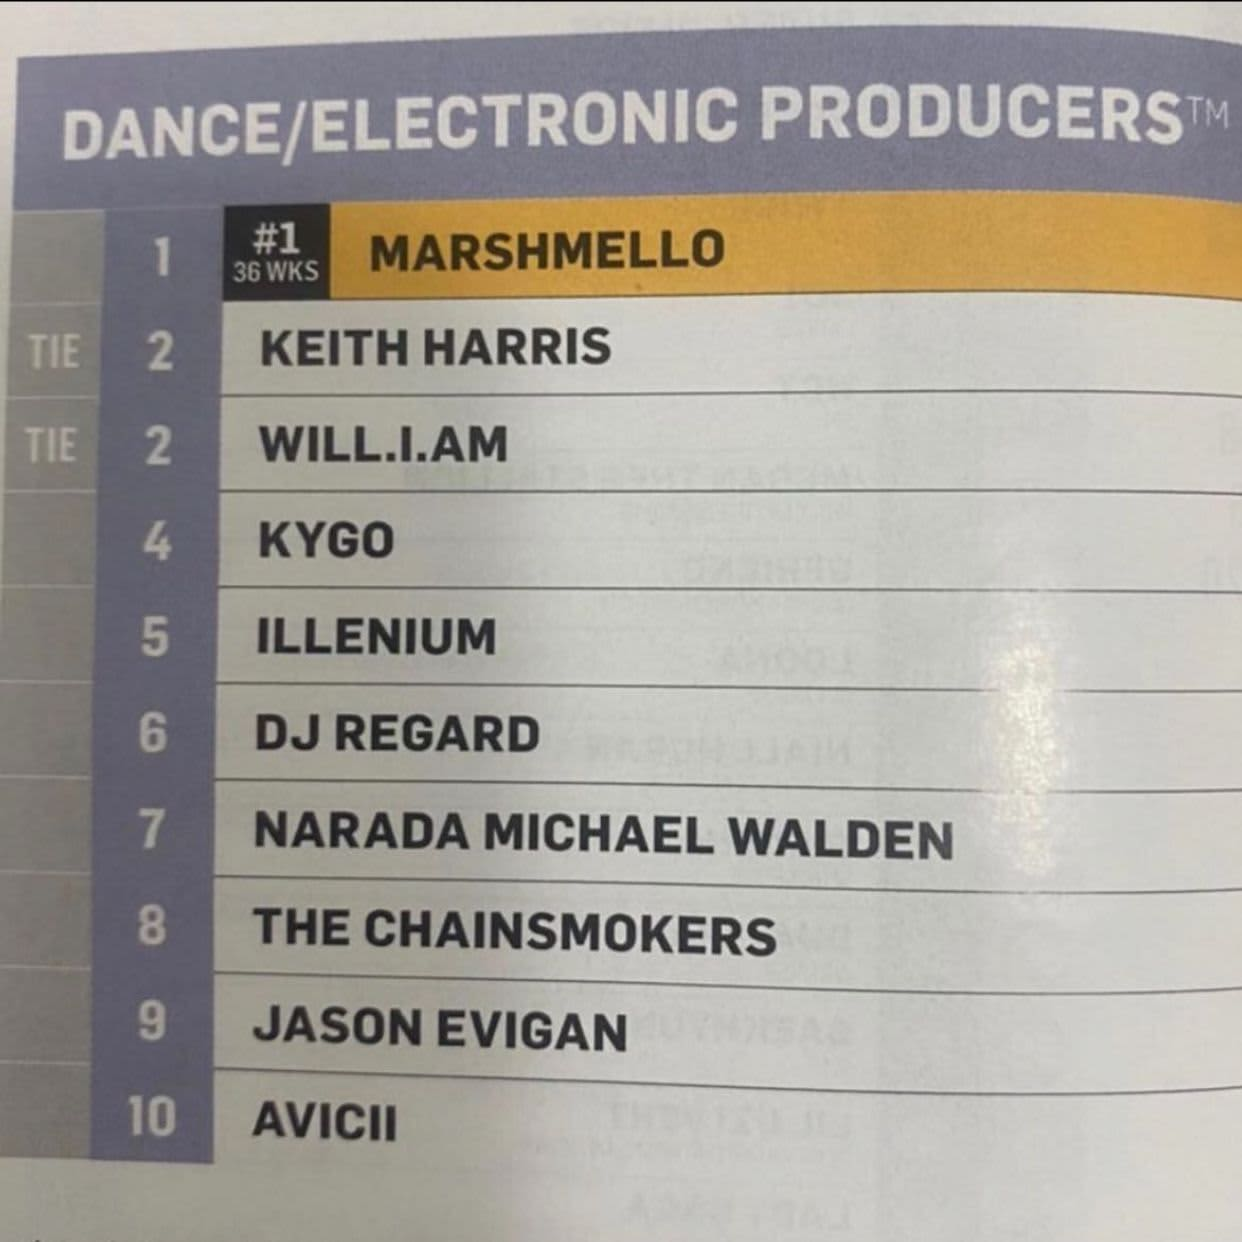 Keith Harris #2 on the Top 10 Dance/Electronic Producers